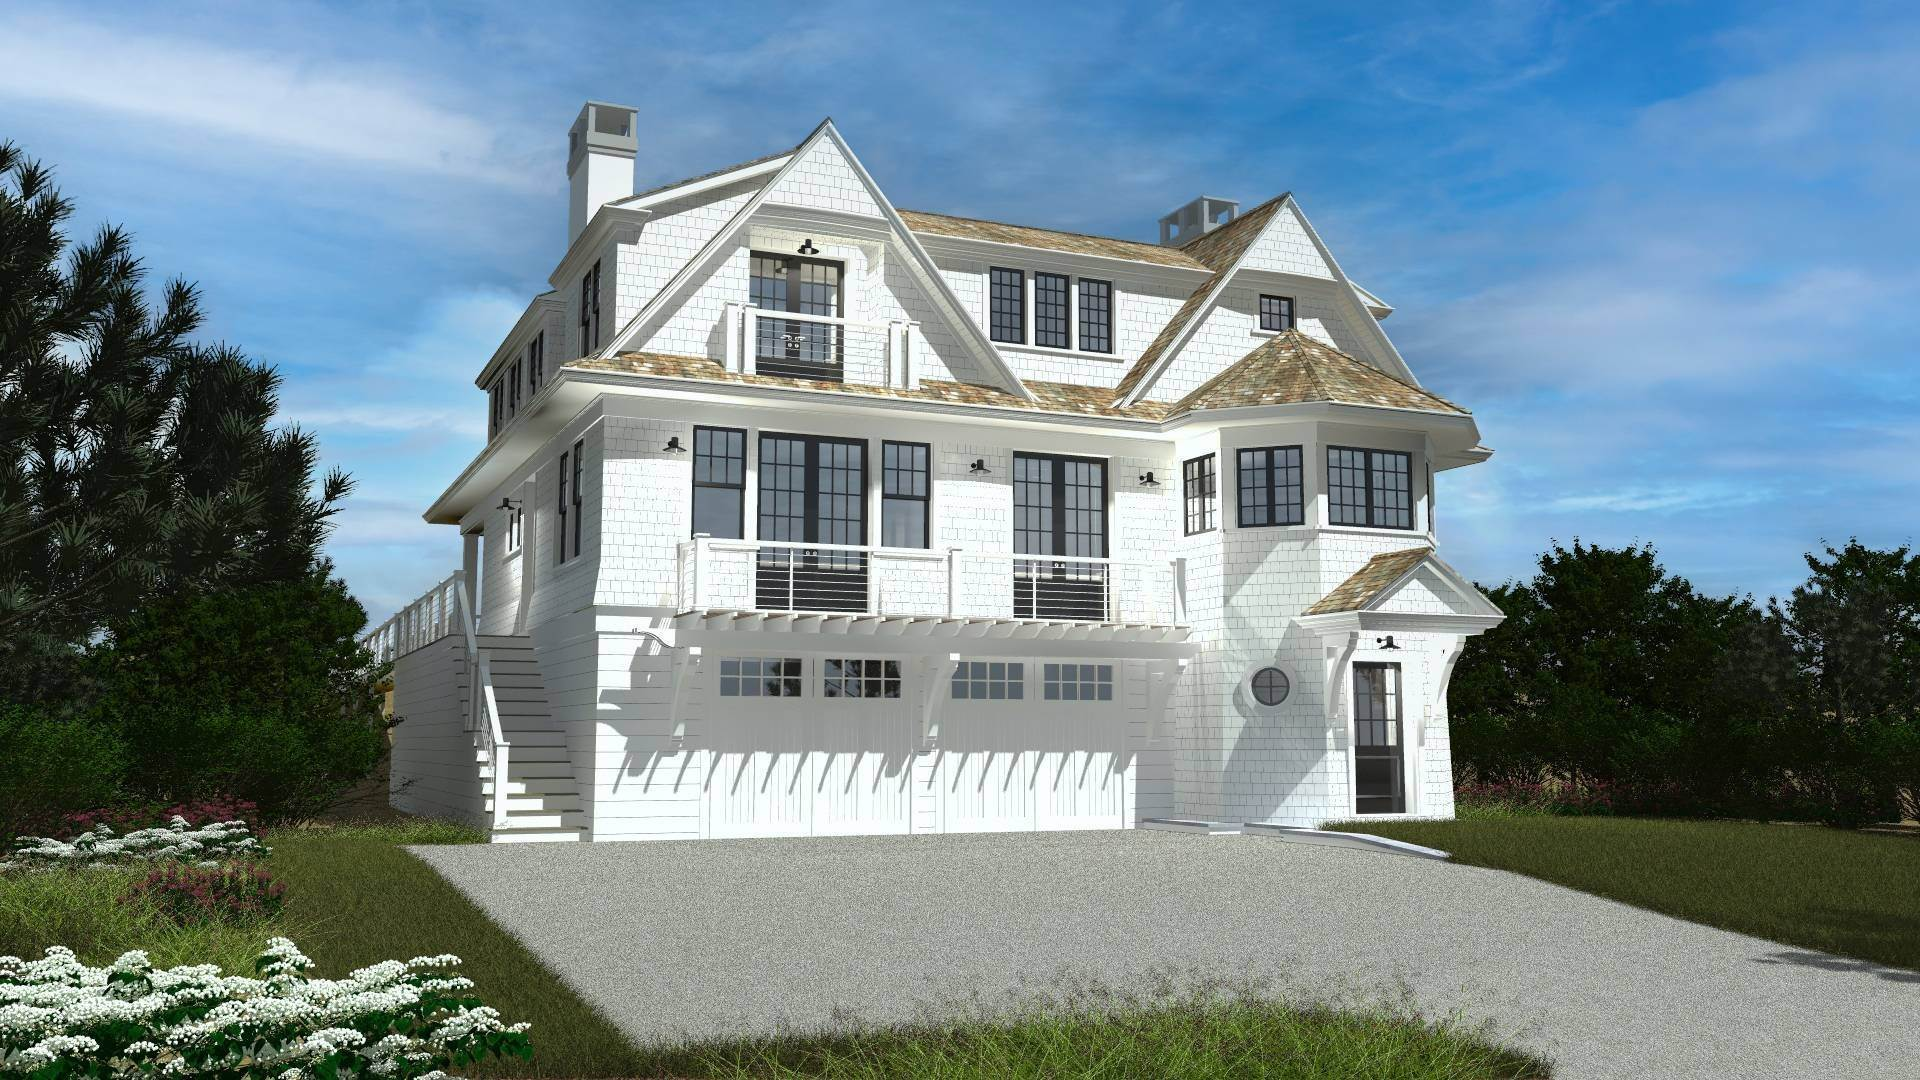 Single Family Home for Sale at New Oceanfront - Summer 2021 Occupancy 547 Dune Road, Westhampton, NY 11977